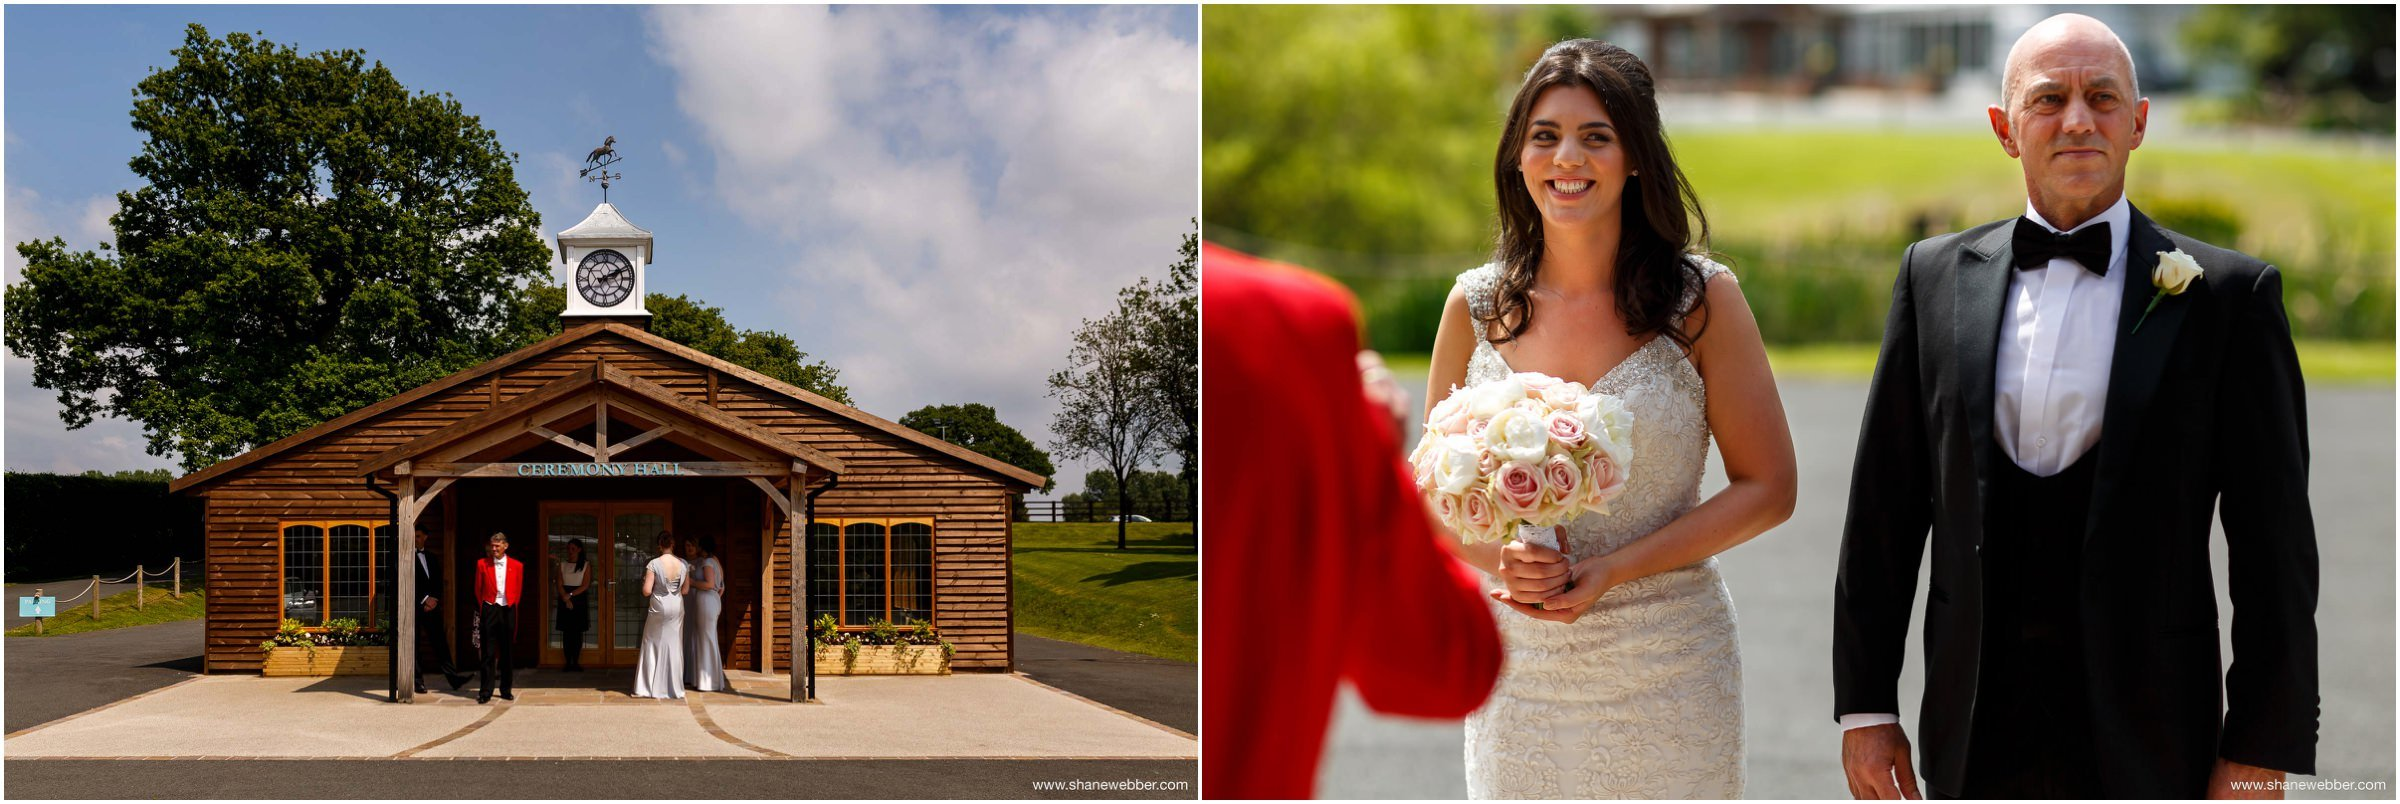 Bride with her Dad at The Stables